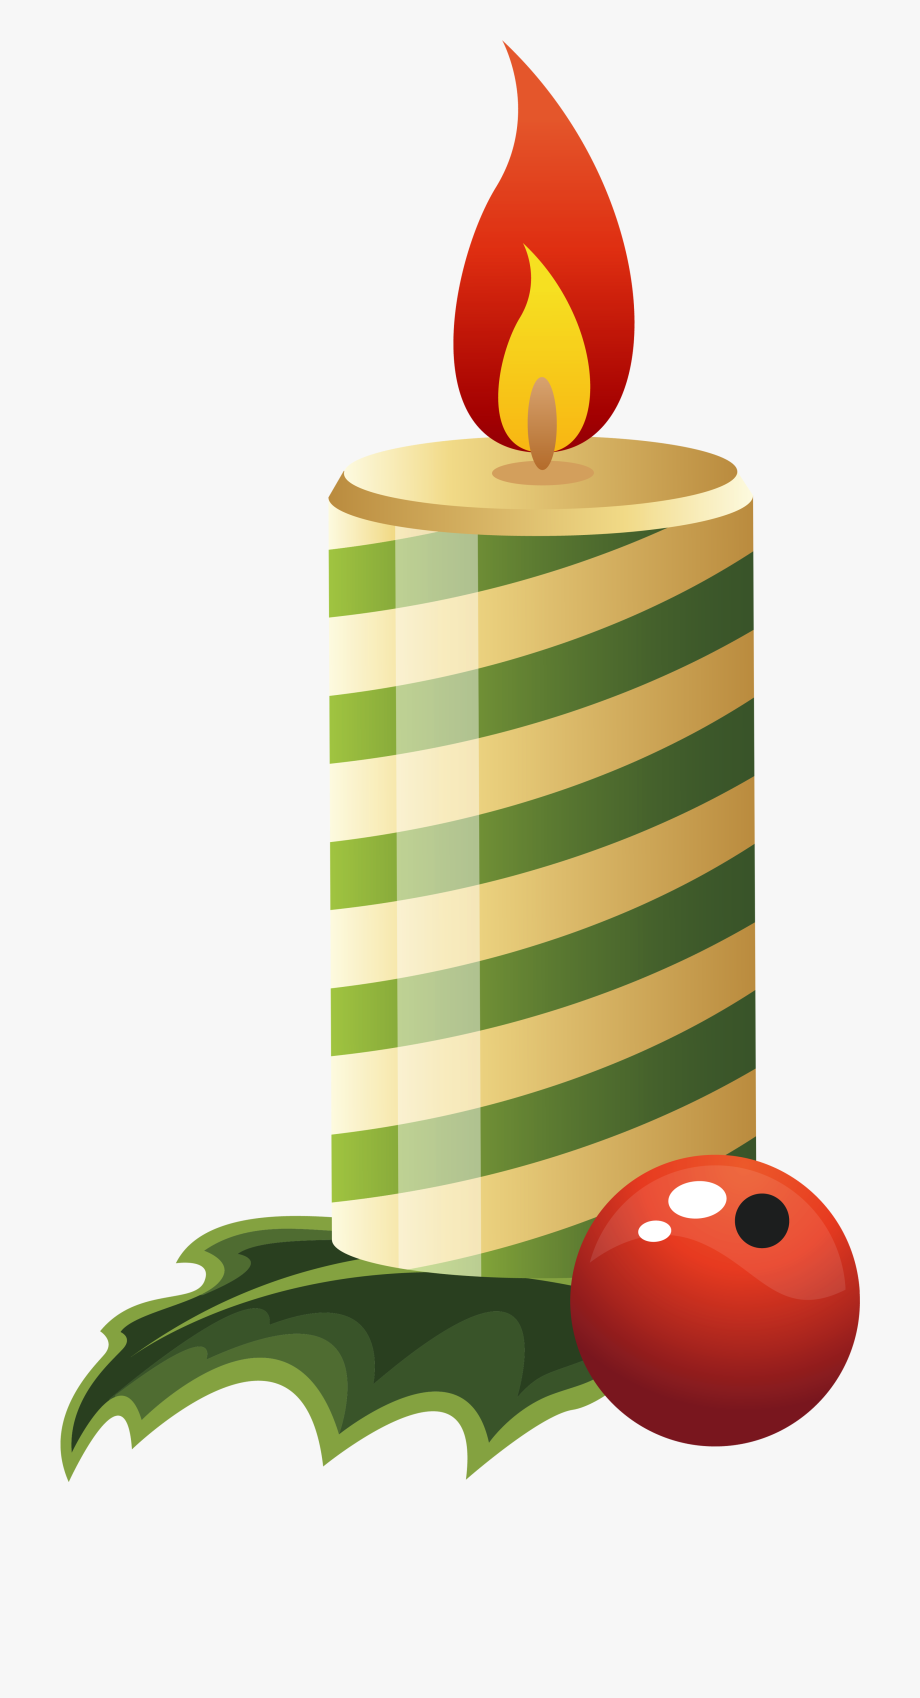 Green Christmas Candle Png Image Gallery Yopriceville - Green